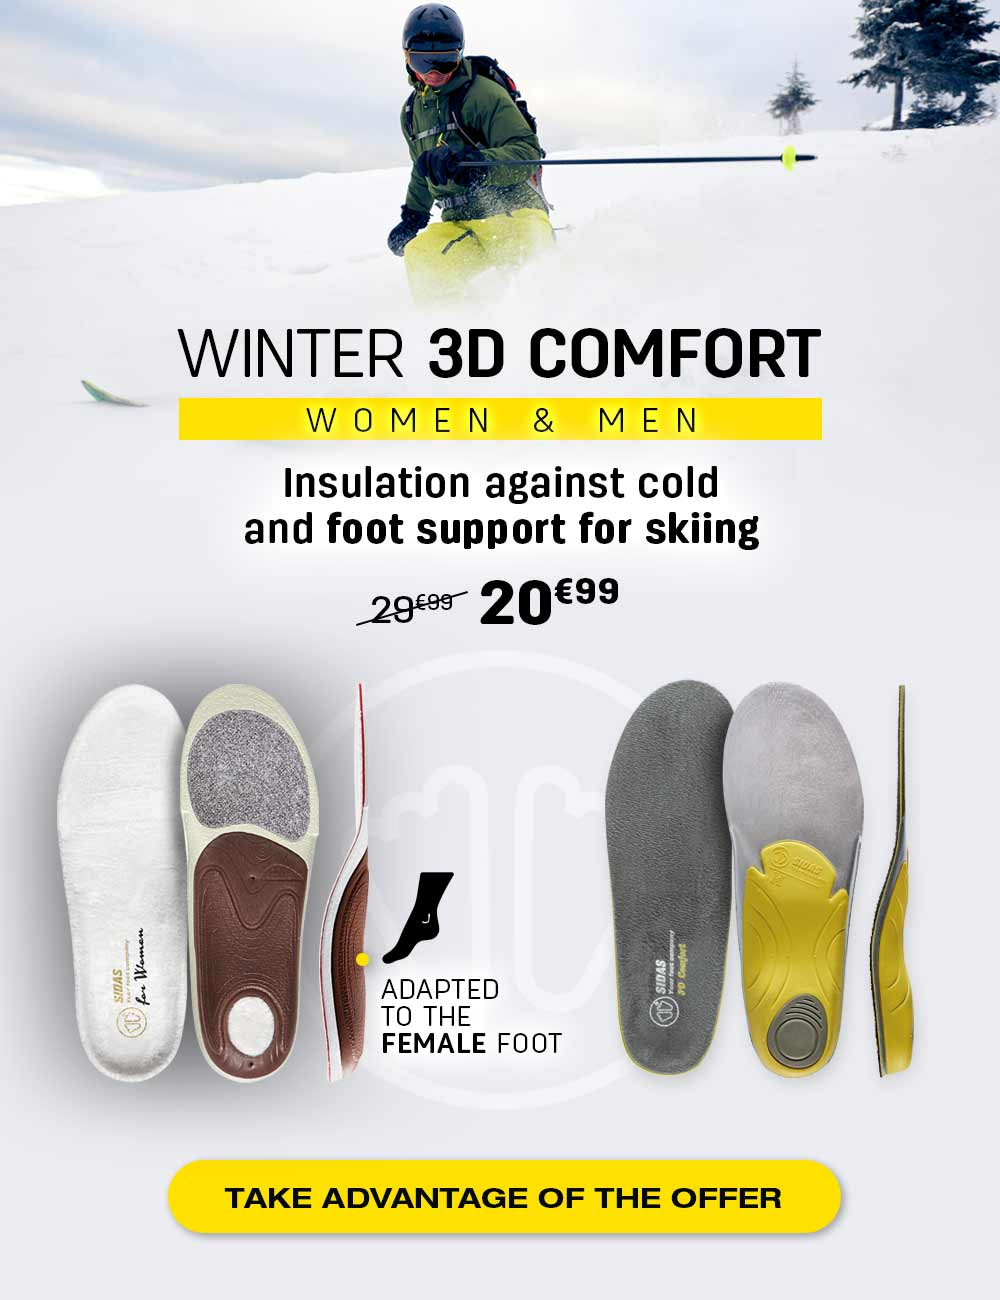 Insulation against cold and foot support for skiing